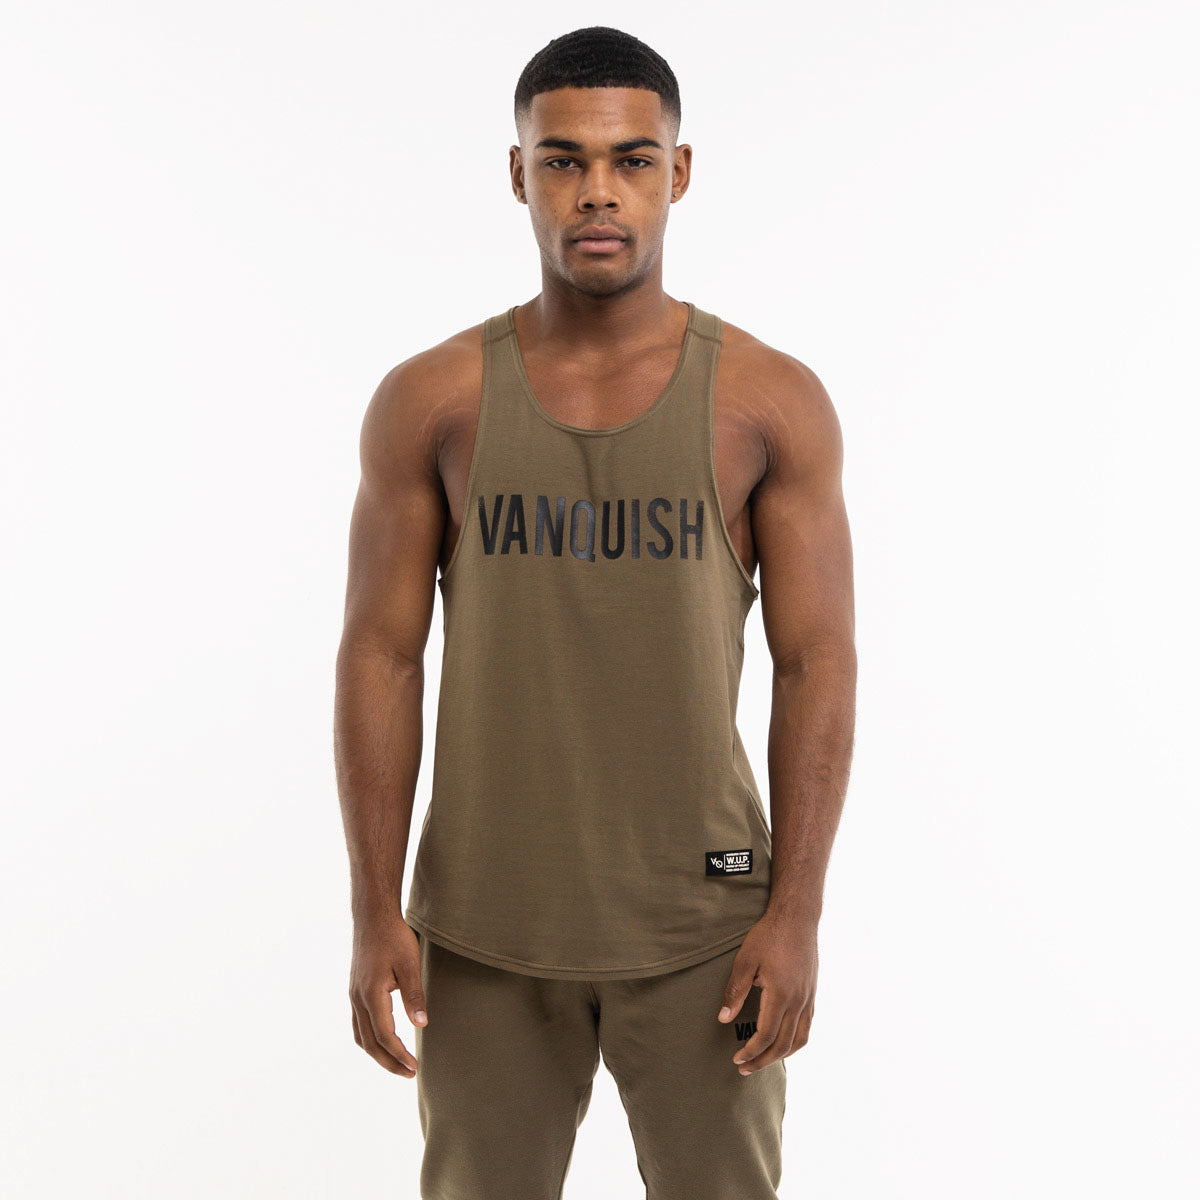 Vanquish Warm Up Project Olive Tank Top